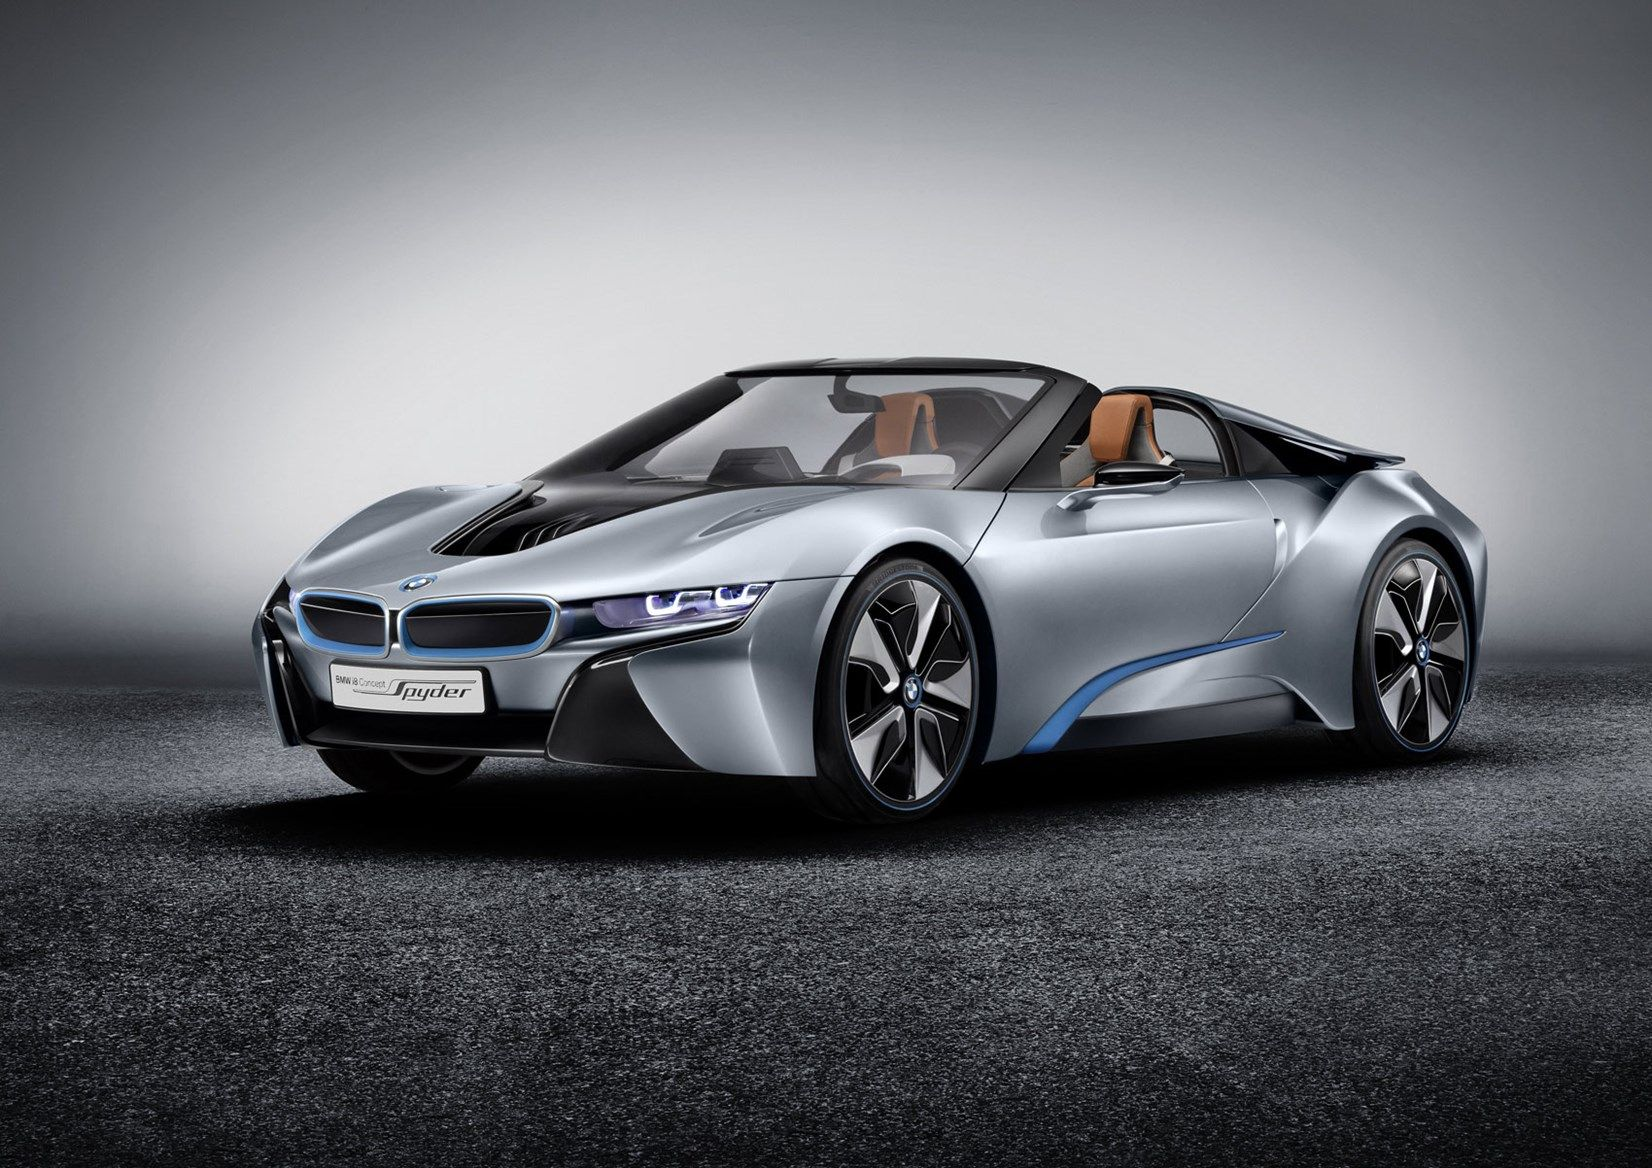 2018 Bmw I8 Roadster Colors Release Date Redesign Price Despite